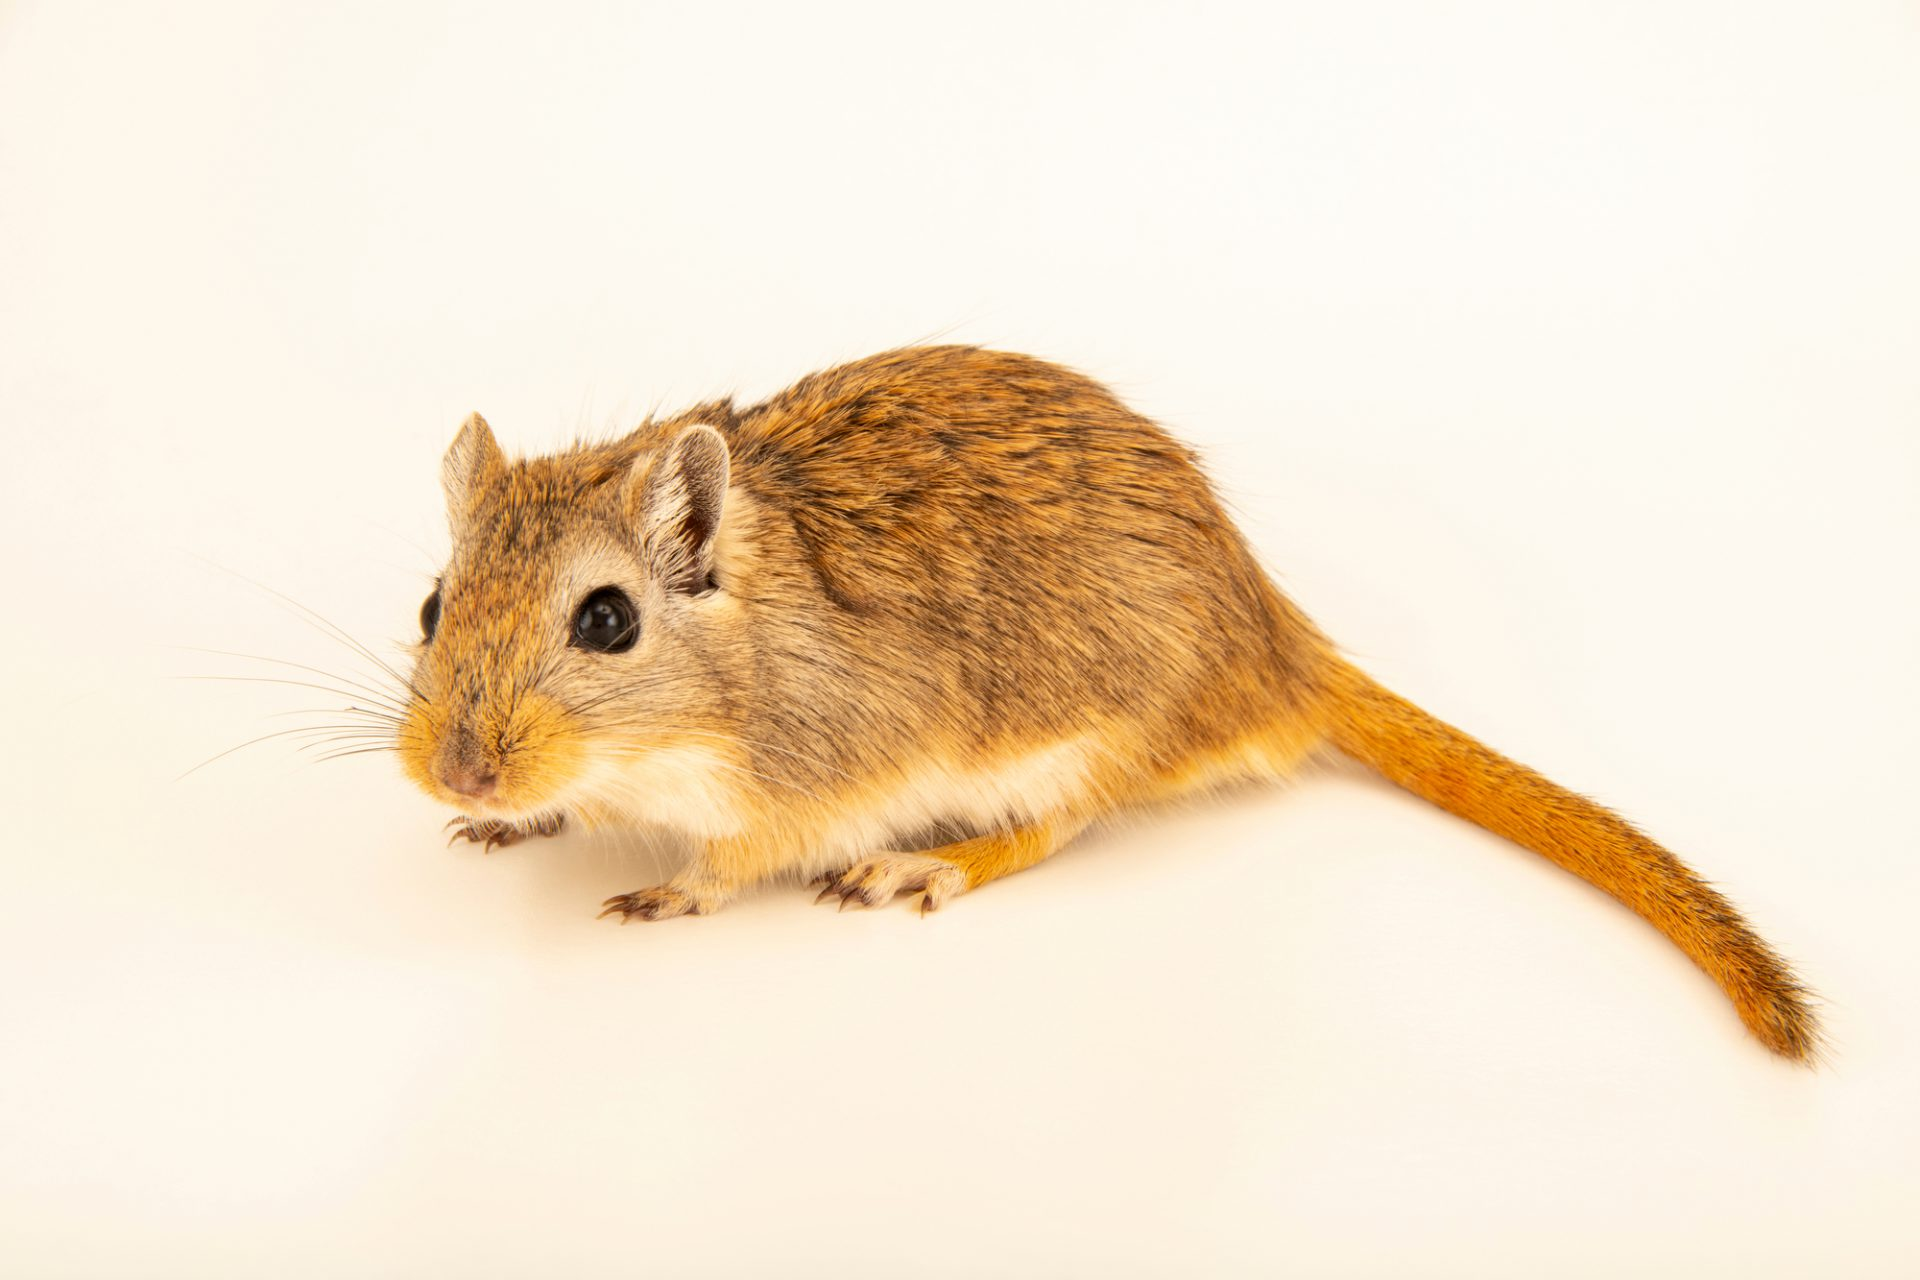 Photo: Mongolian gerbil (Meriones unguiculatus) wild caught in Mongolia, at the Moscow Zoo.